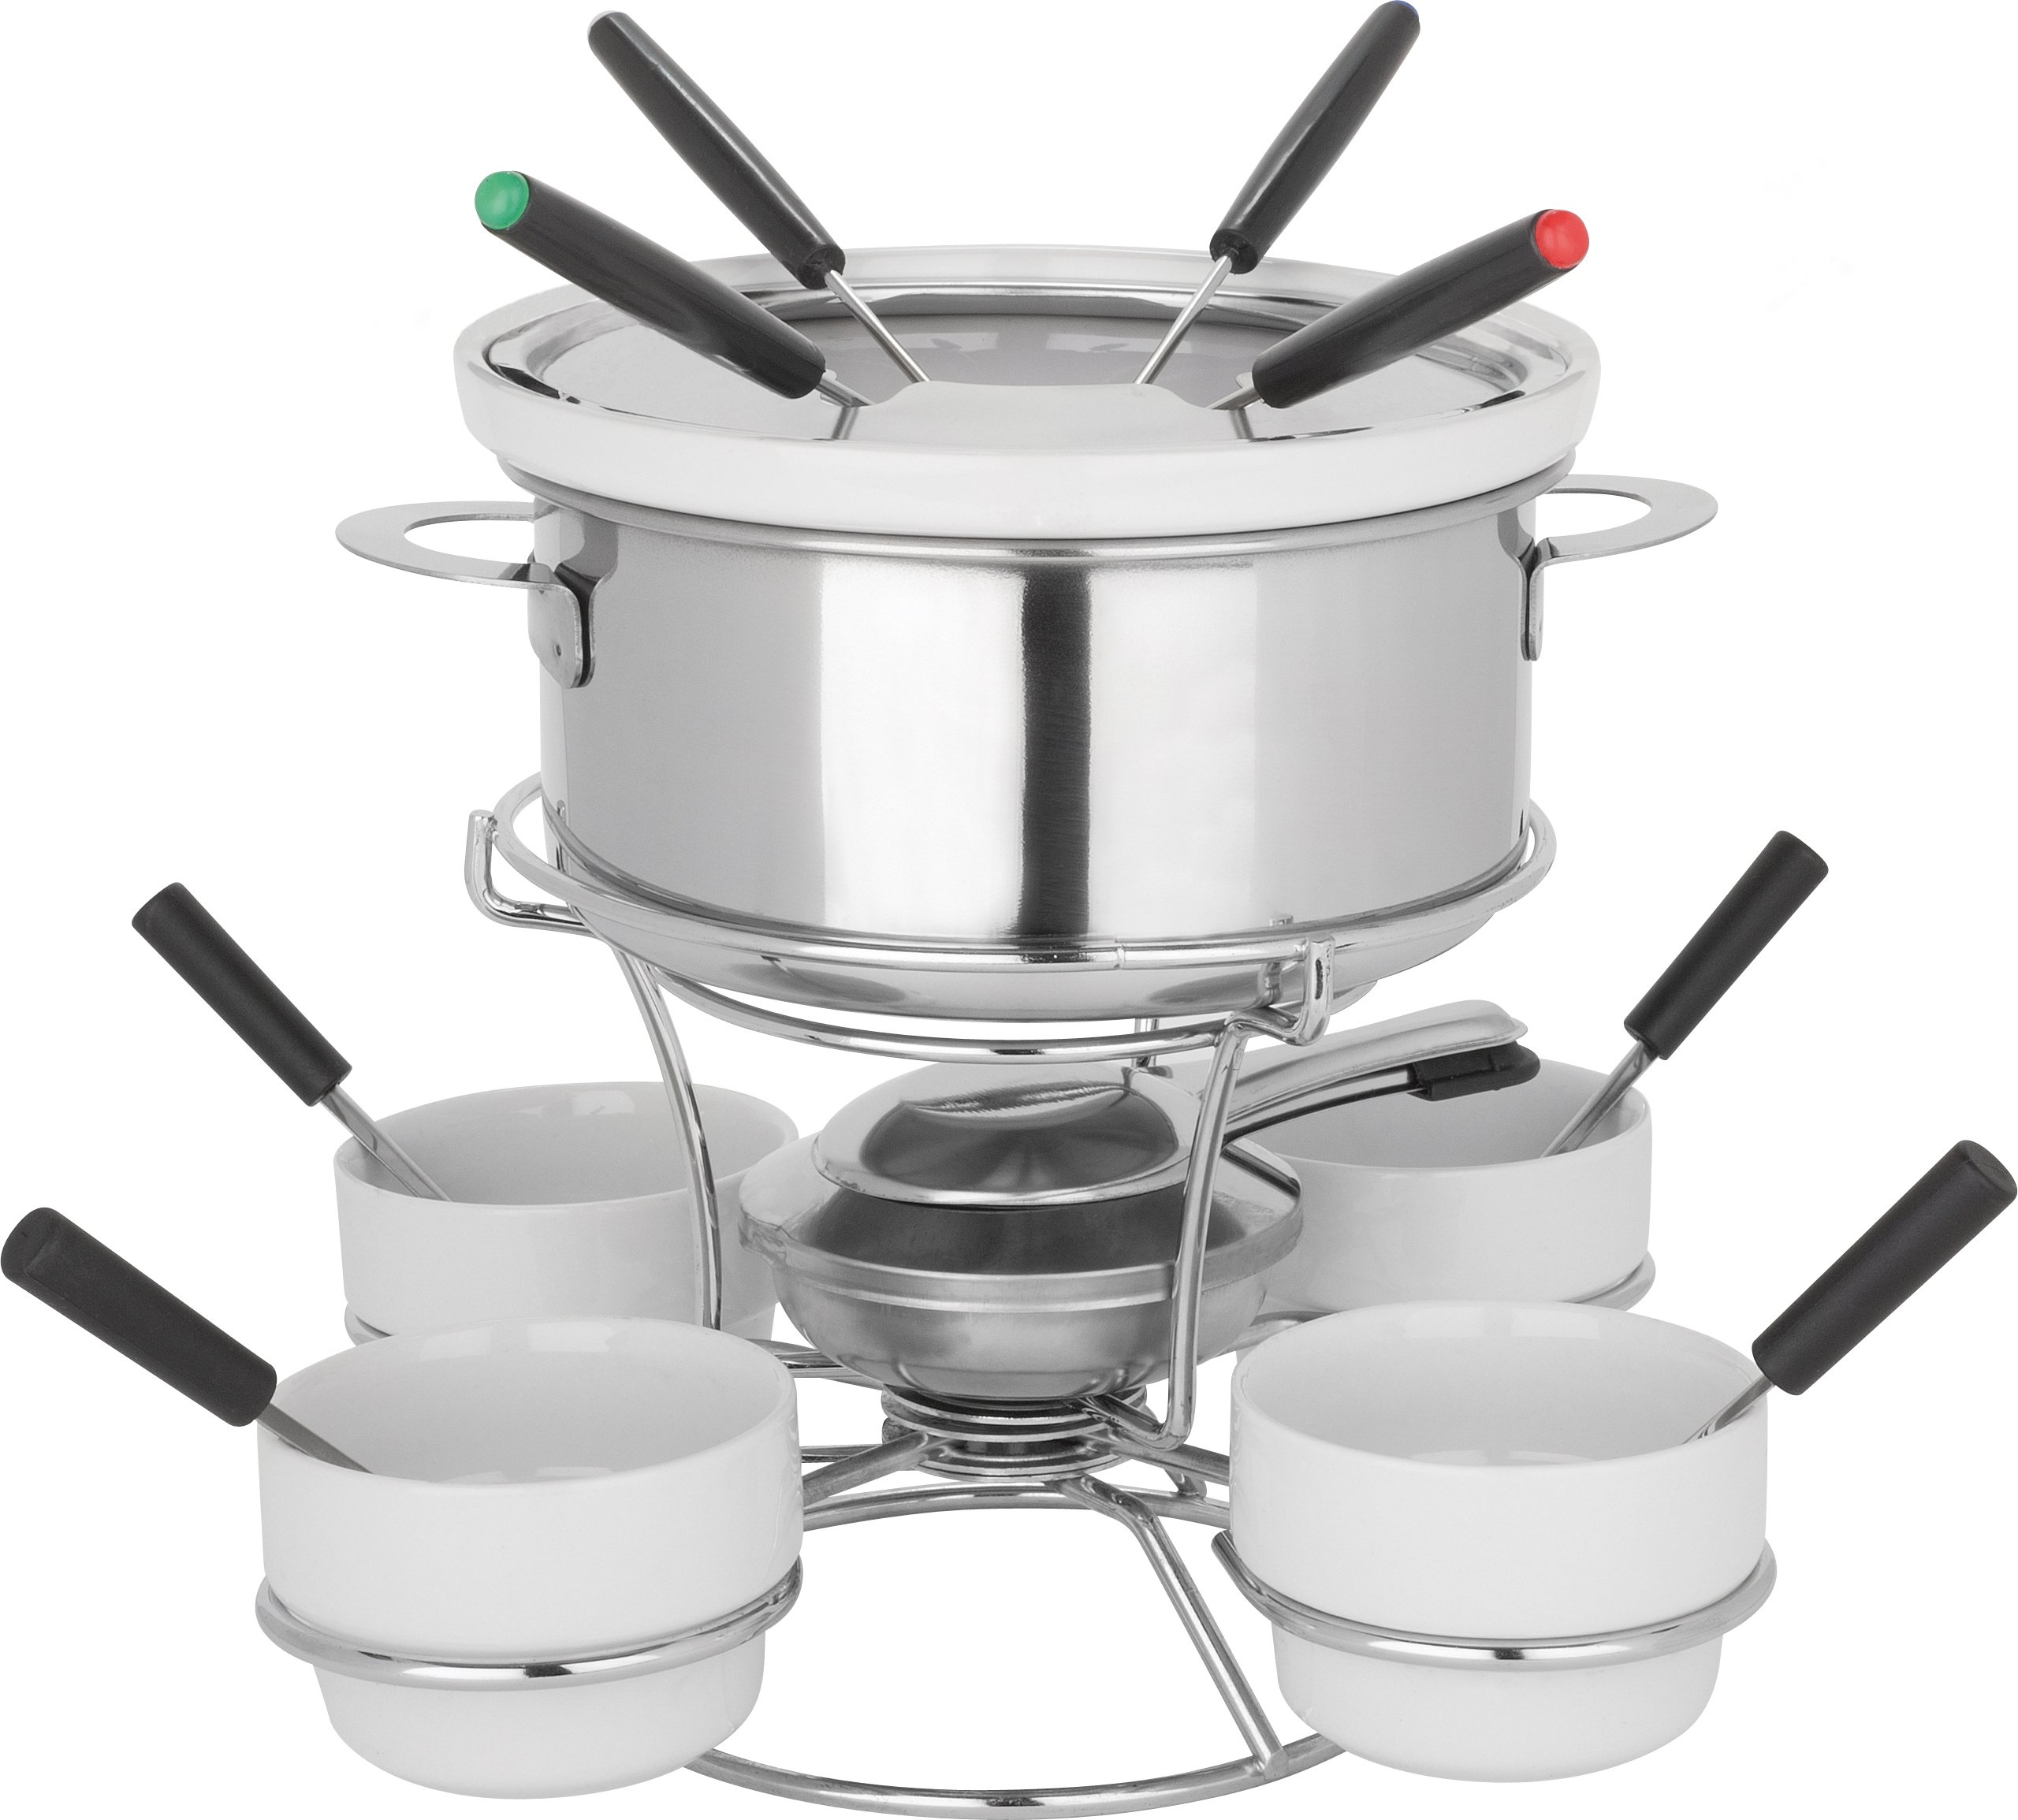 Trudeau Home Presence Fenty 44 Ounce Stainless Steel Fondue Set With Lazy Susan - 17 Piece by Trudeau Home Presence